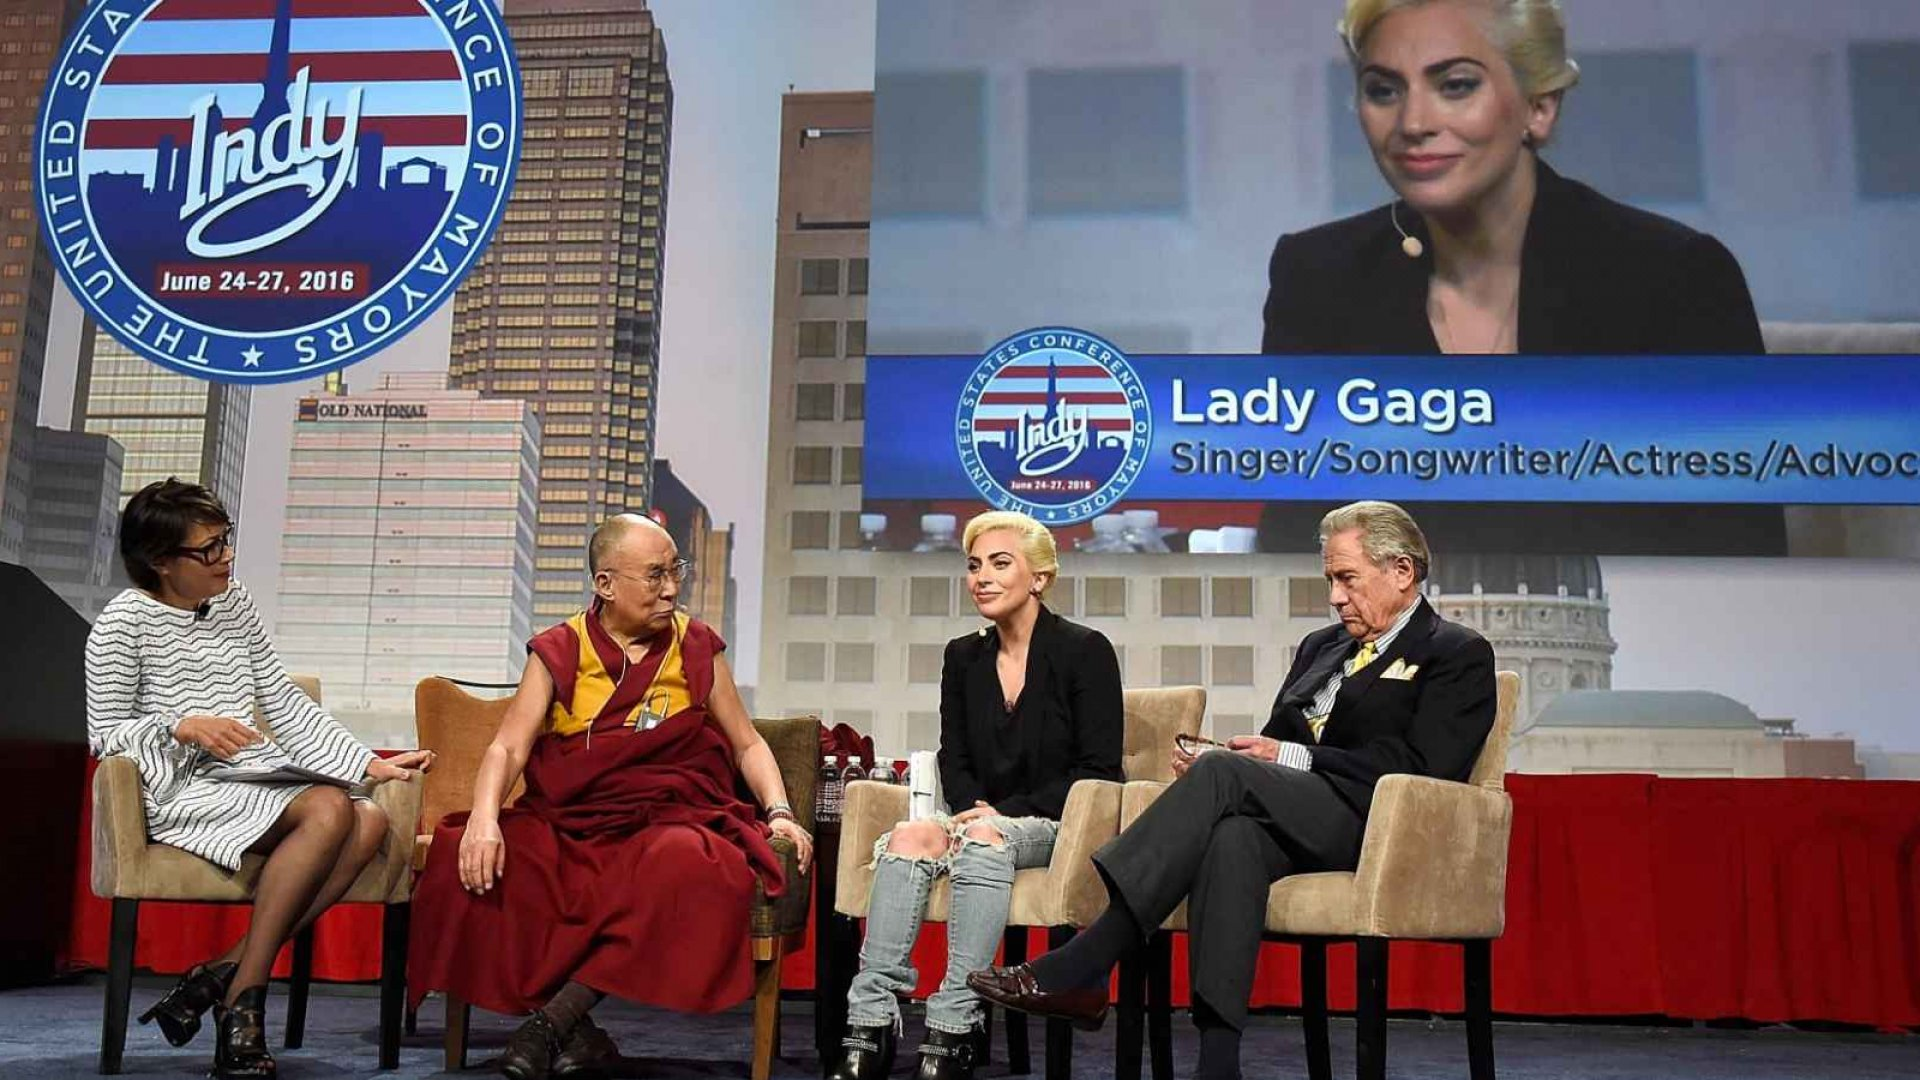 How Lady Gaga, the Dalai Lama, and a Billionaire Are Inspiring Cities to Cultivate a Culture of Kindness